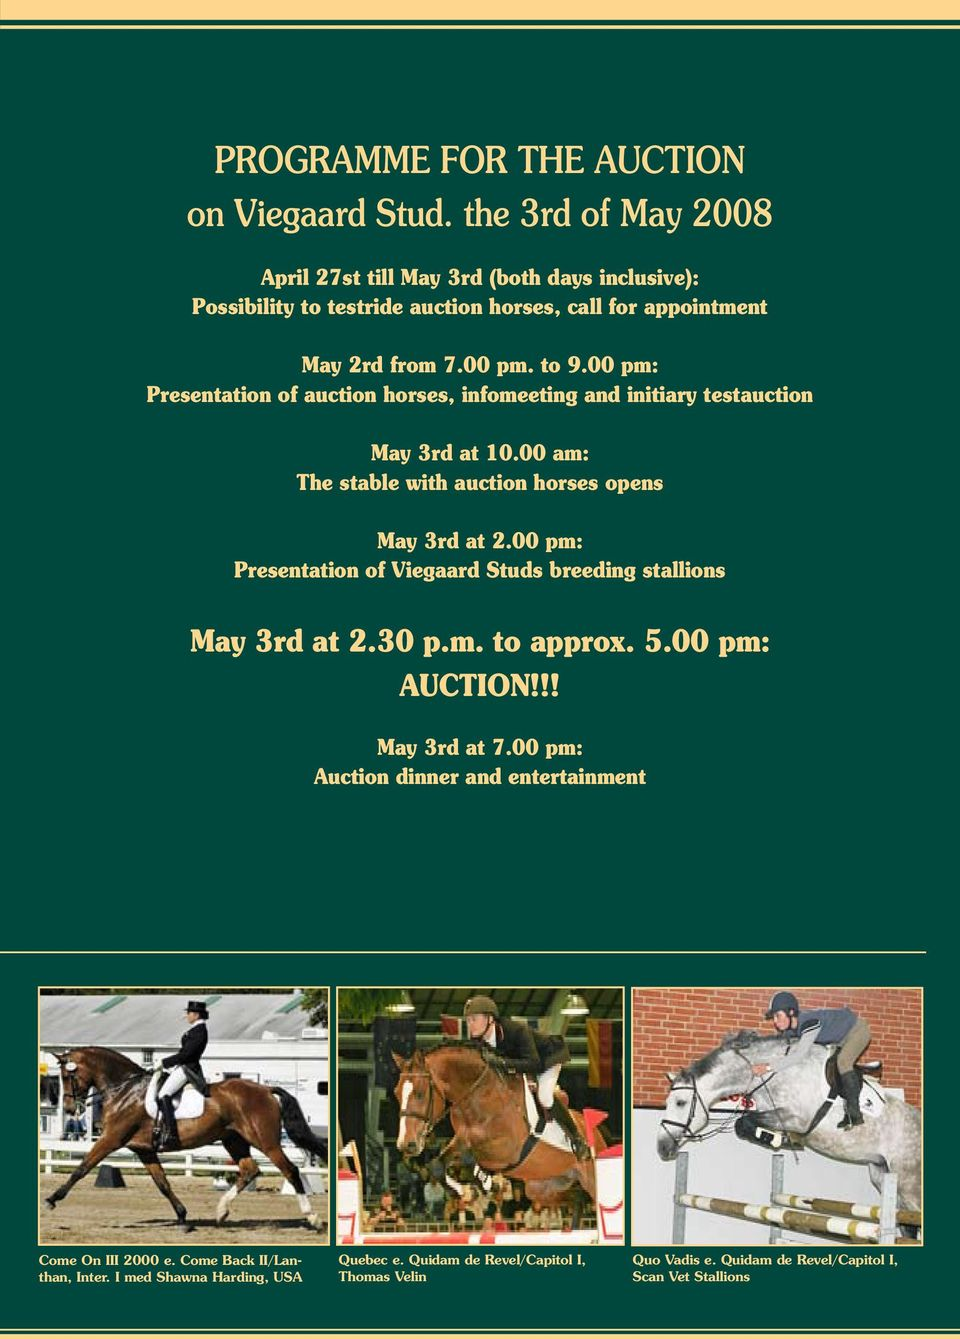 00 pm: Presentation of auction horses, infomeeting and initiary testauction May 3rd at 10.00 am: The stable with auction horses opens May 3rd at 2.